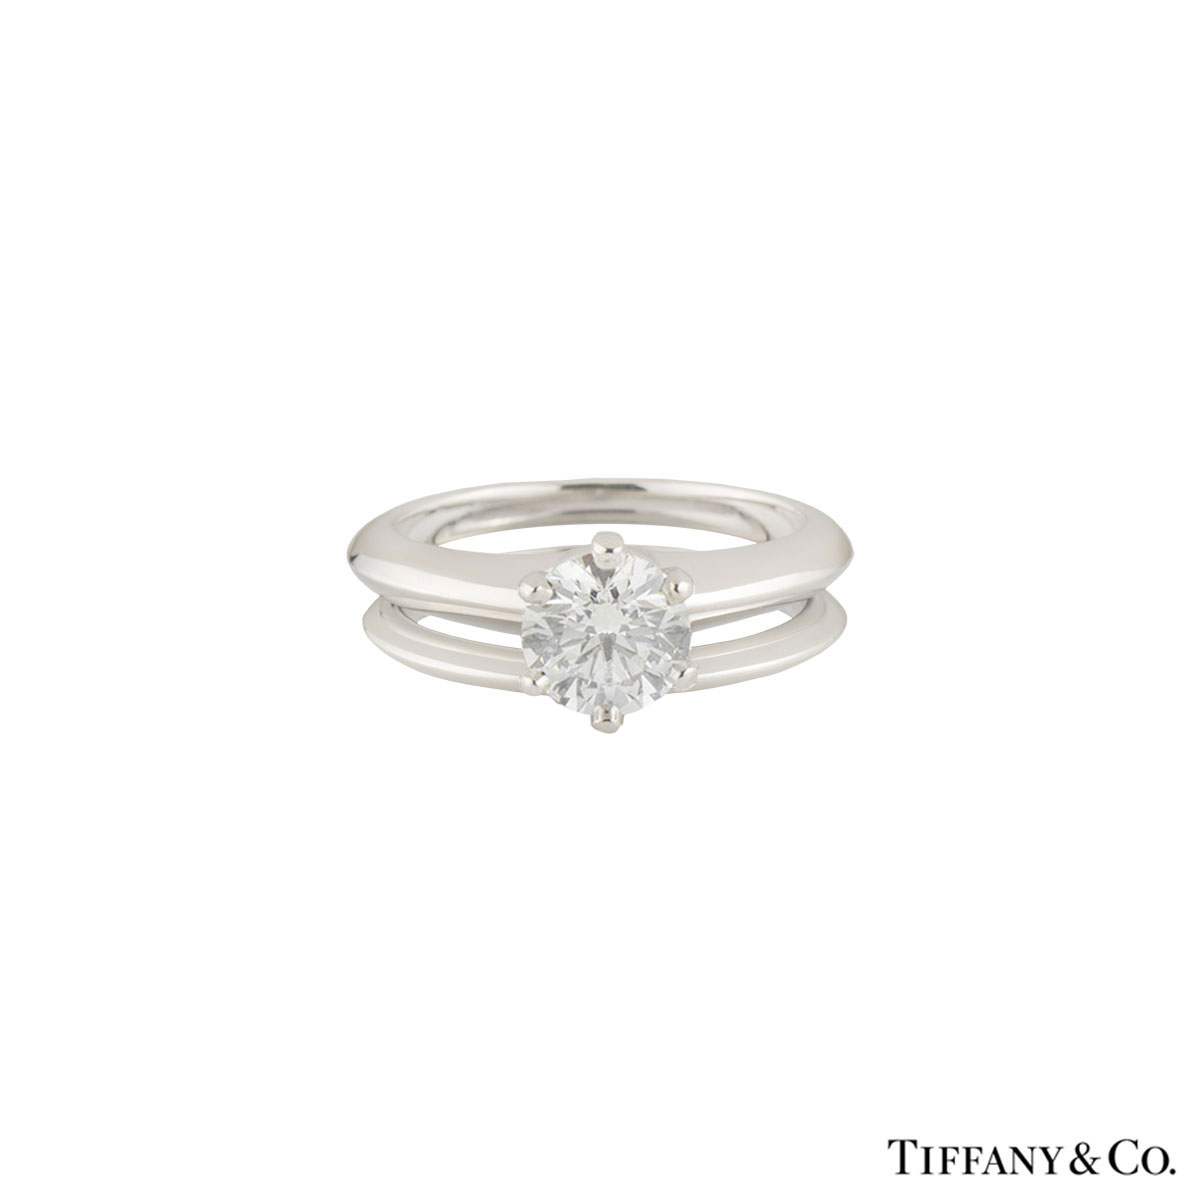 Tiffany & Co. Platinum Setting Band Diamond Ring 2.04ct E/VVS2 with Matching Band Ring